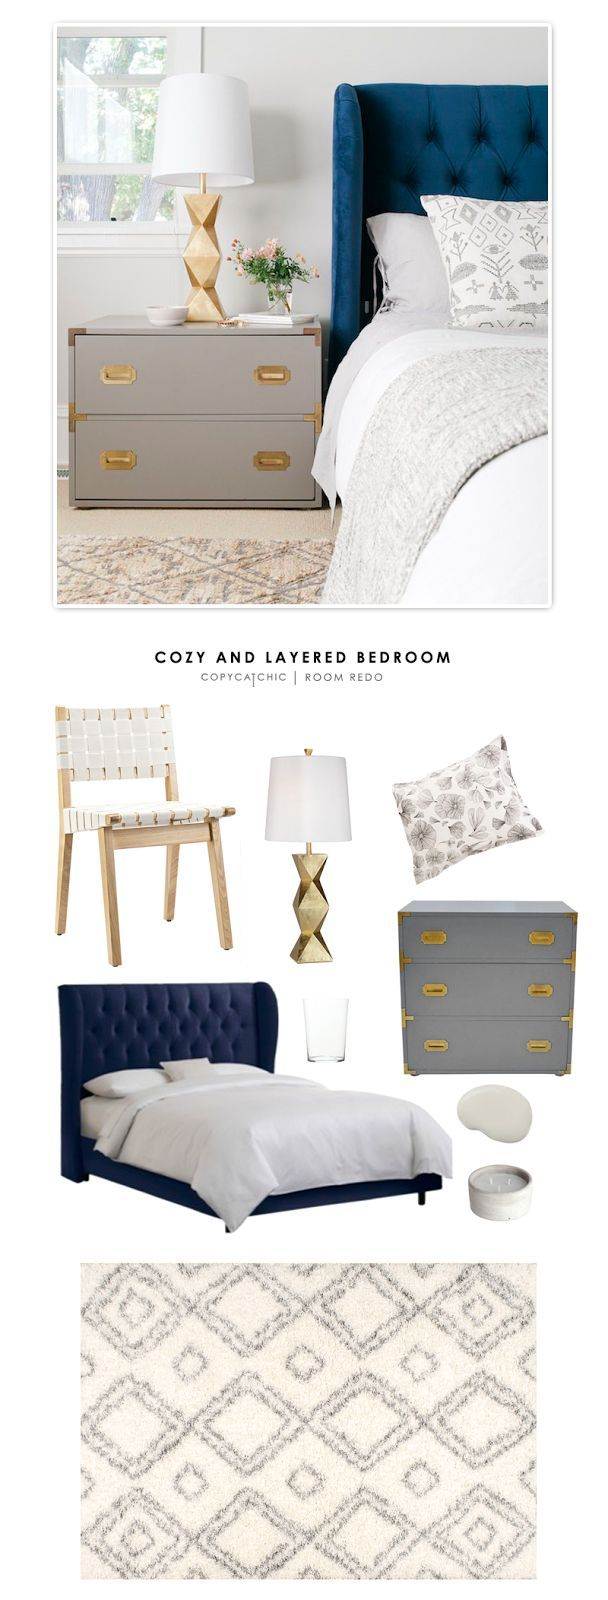 A cozy and layered bedroom designed by Emily Henderson and recreated for $1893 by /audreycdyer/